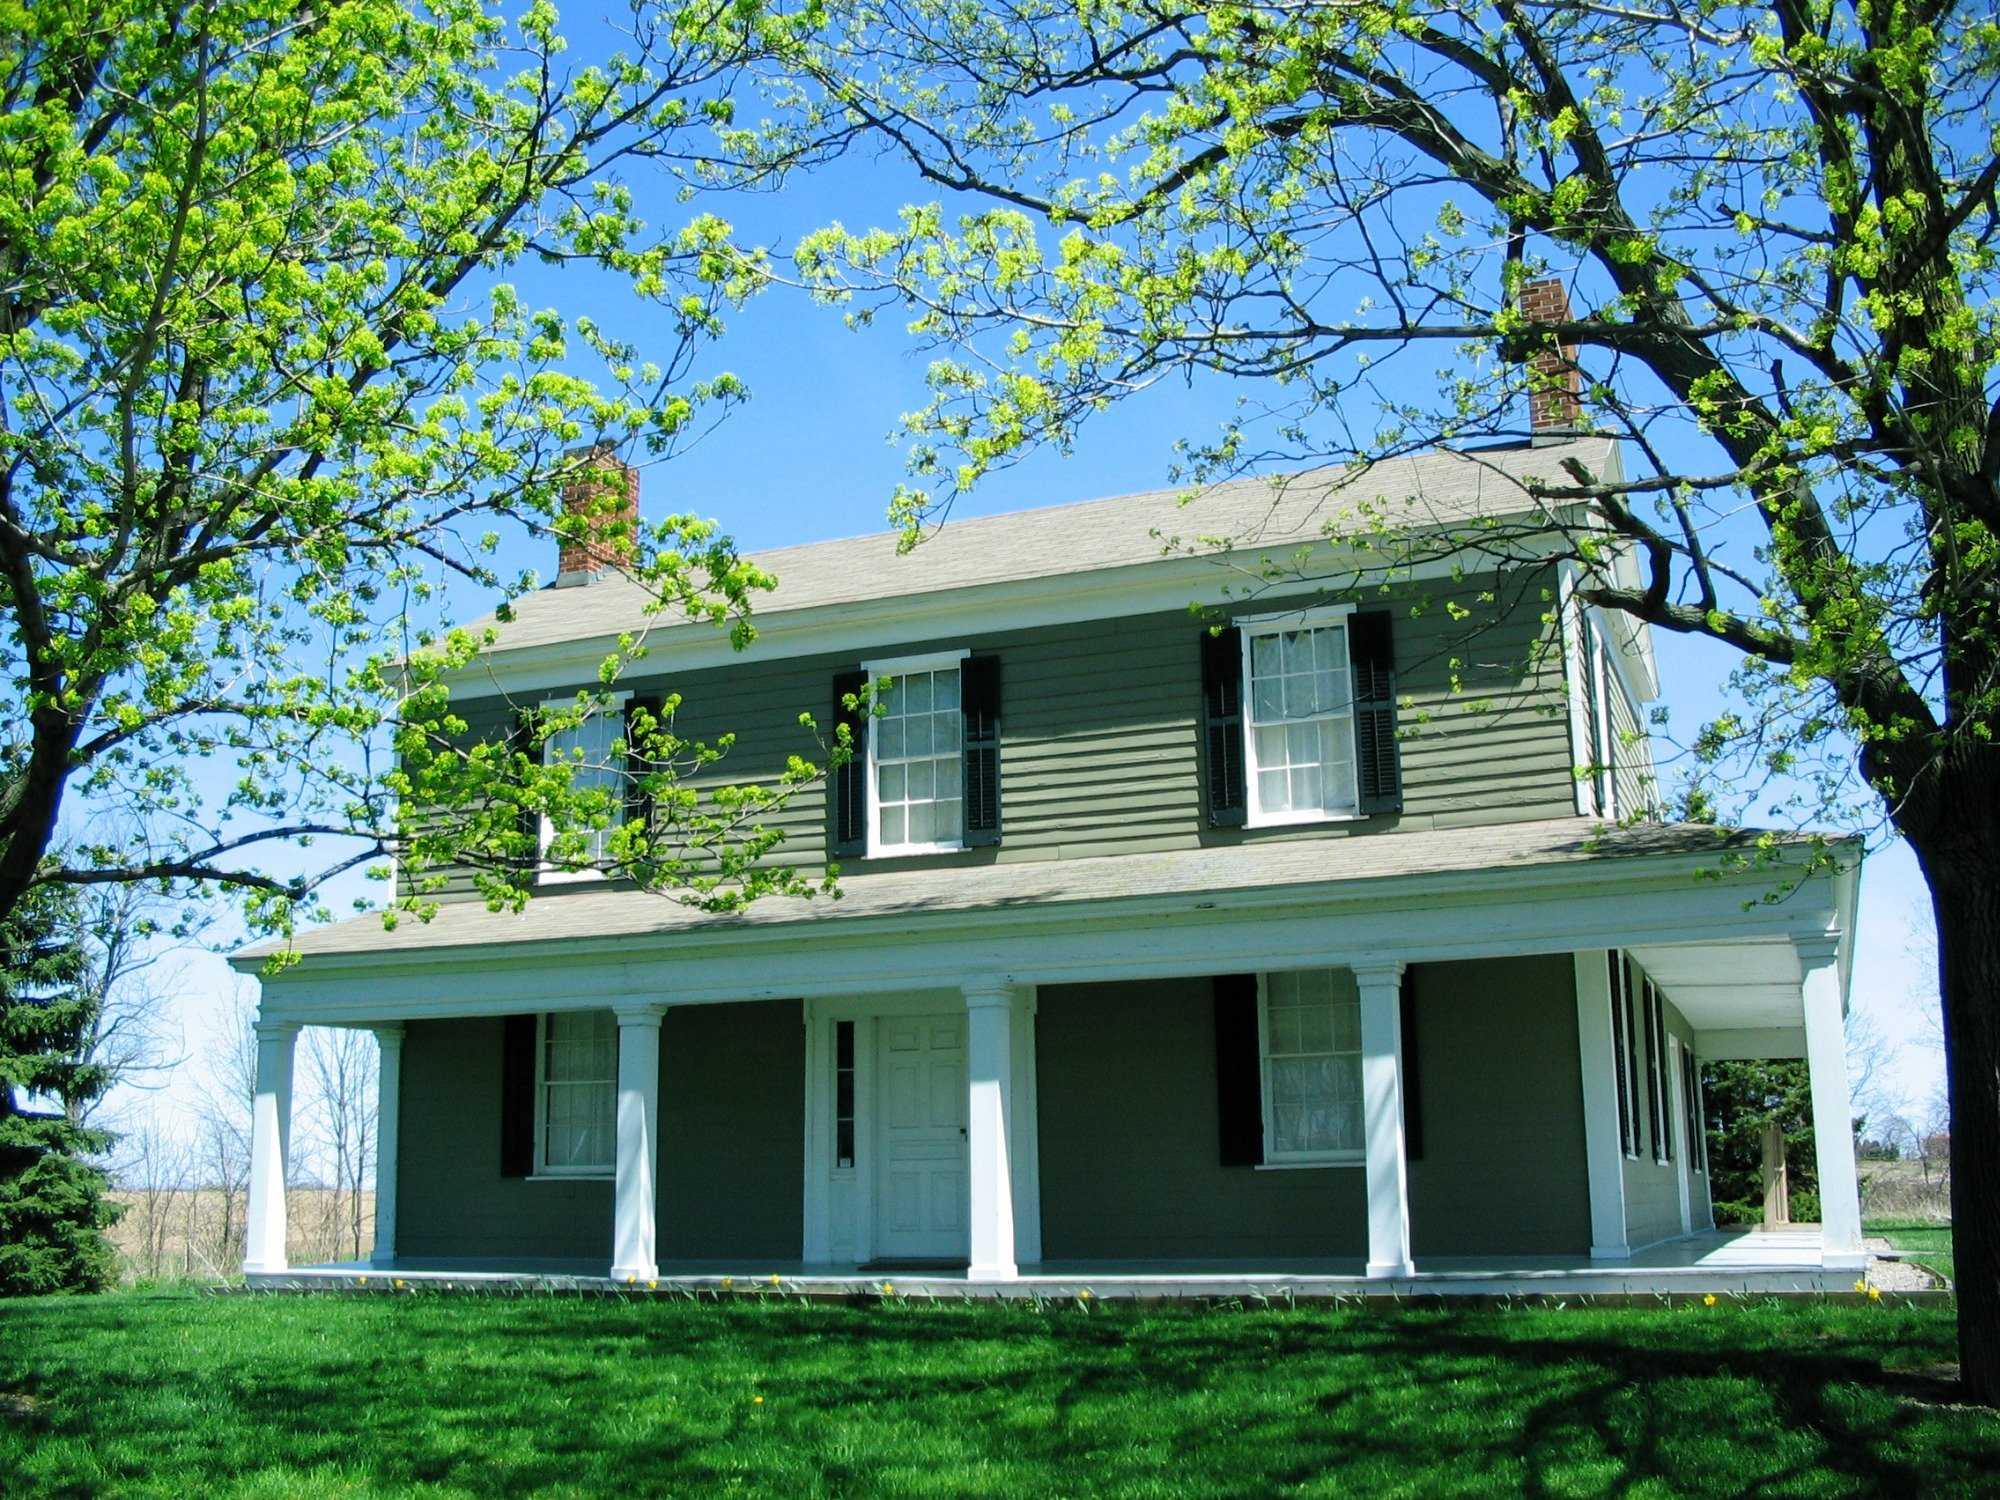 The Johnston House was built in 1822.